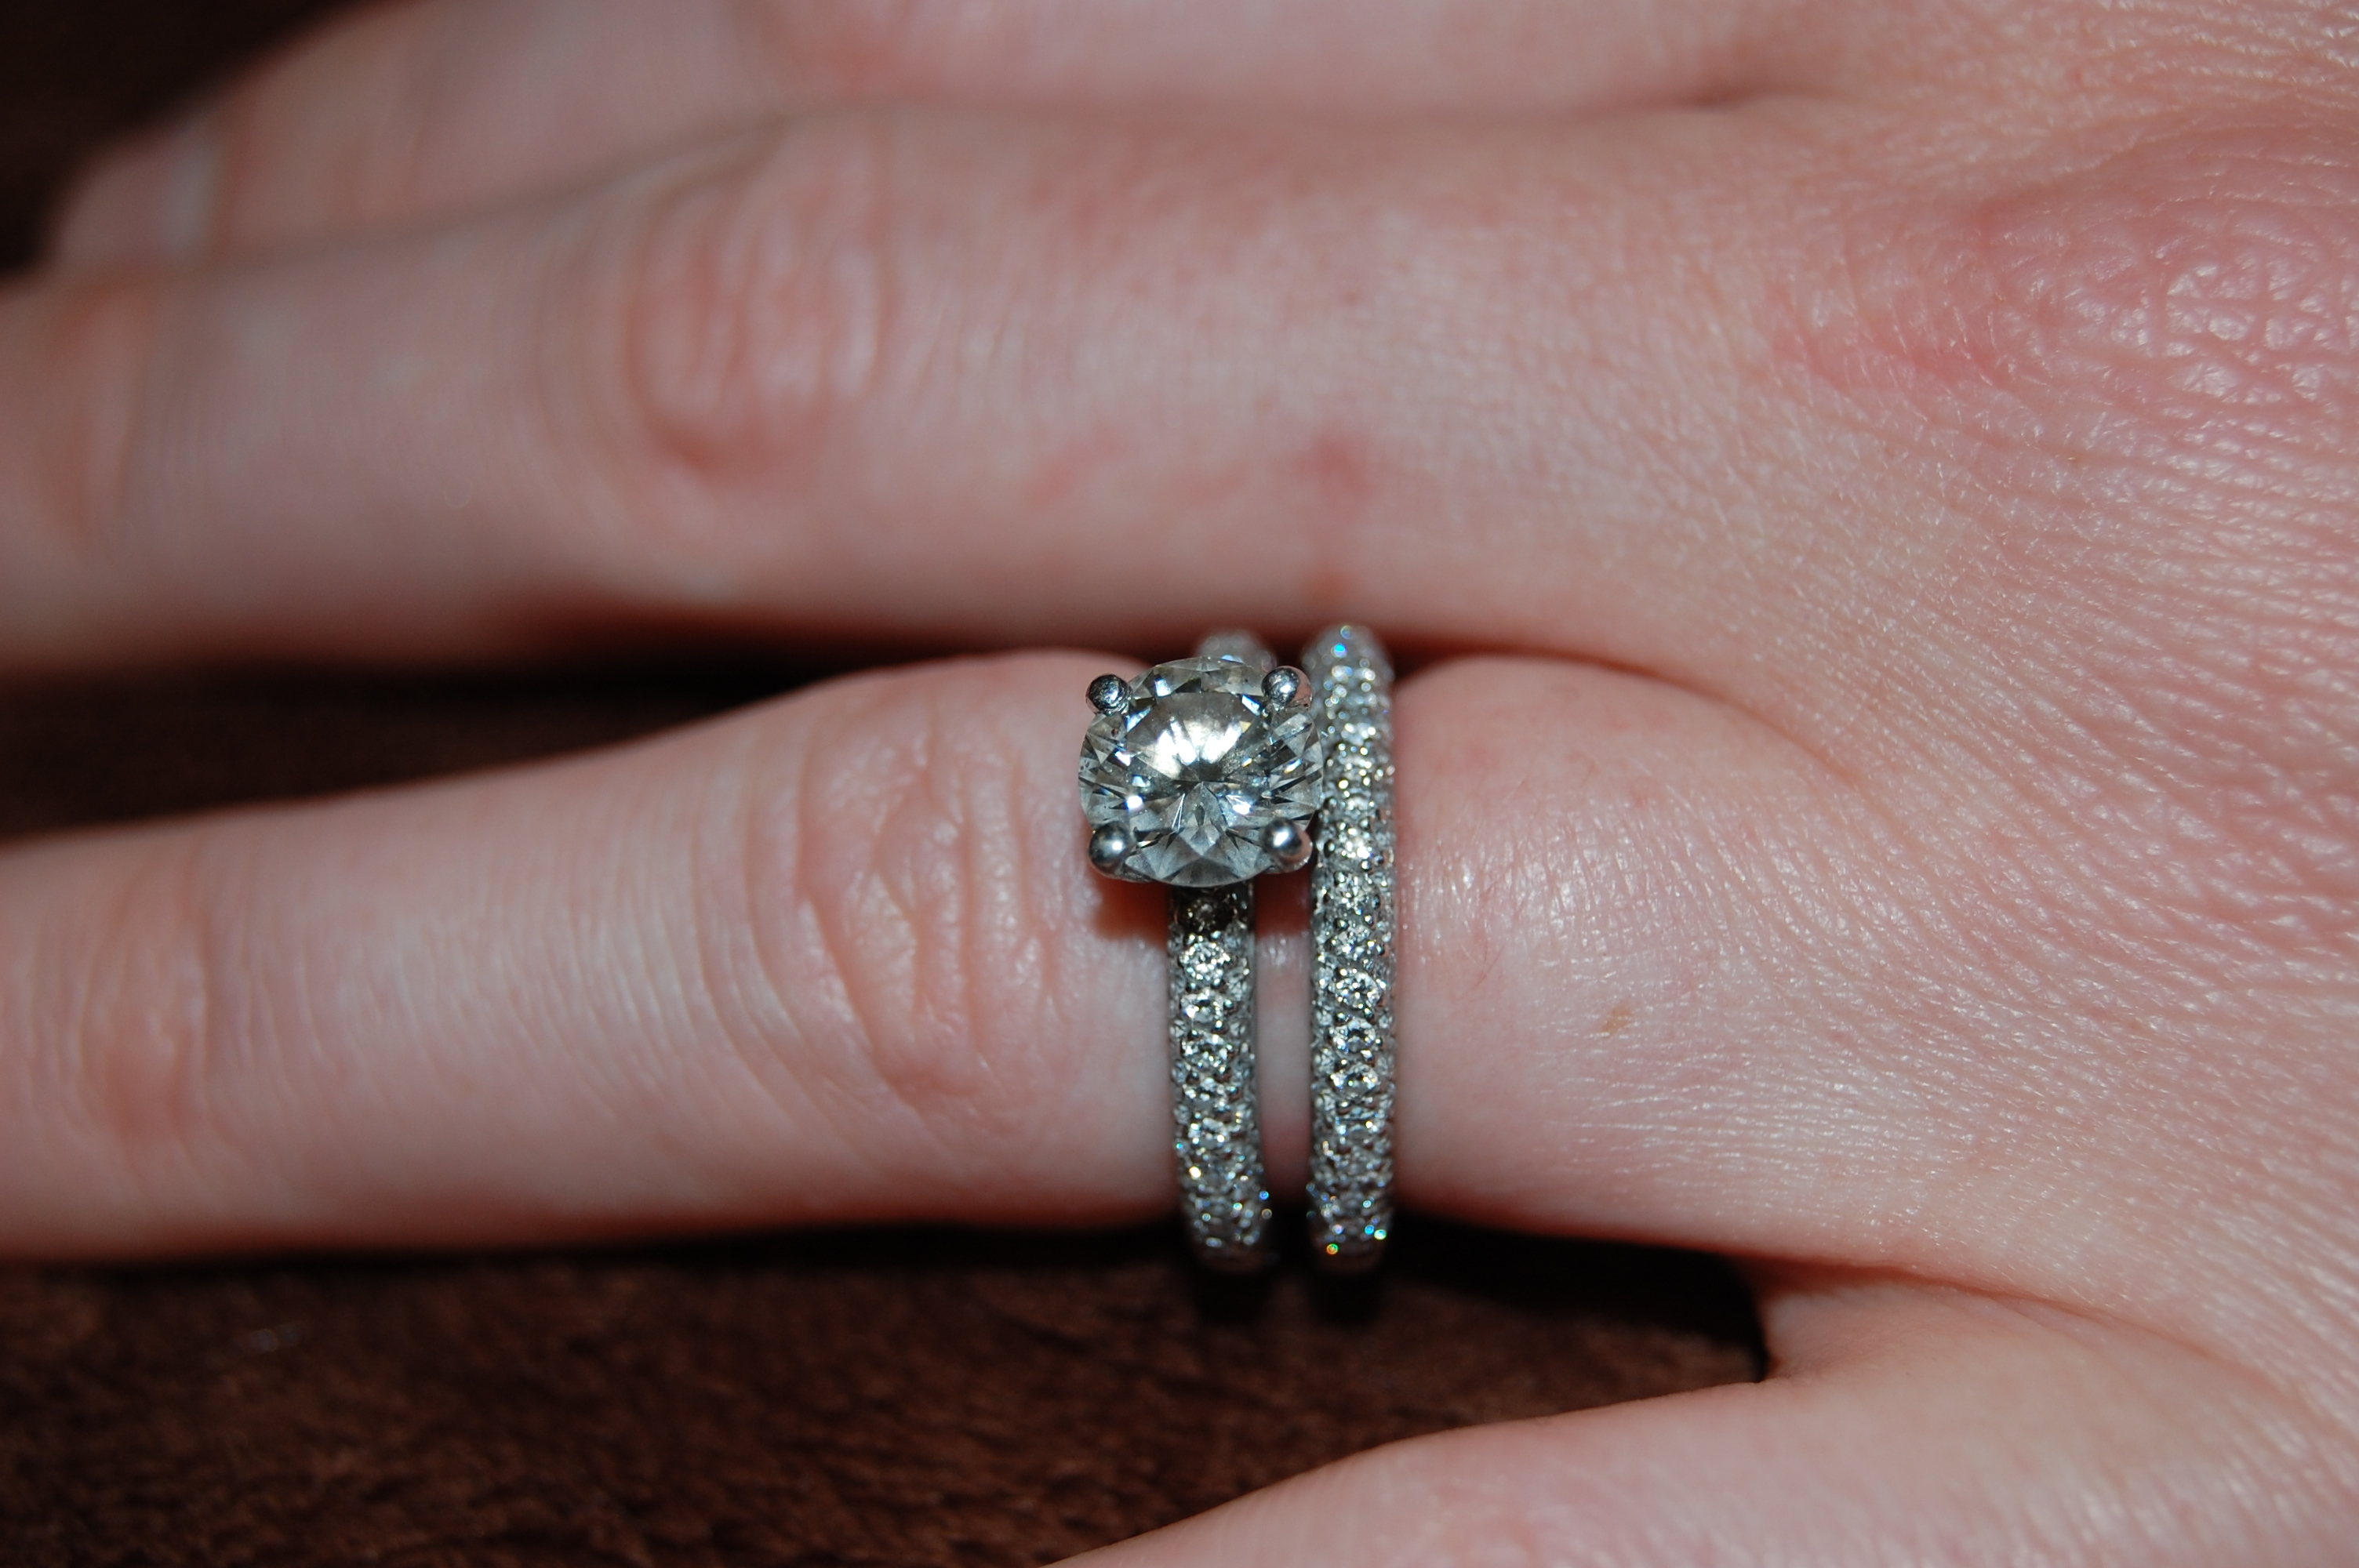 cherry morton hill main rudolph catalog sasha bands micro diamond primak pave band nj eternity front bridal